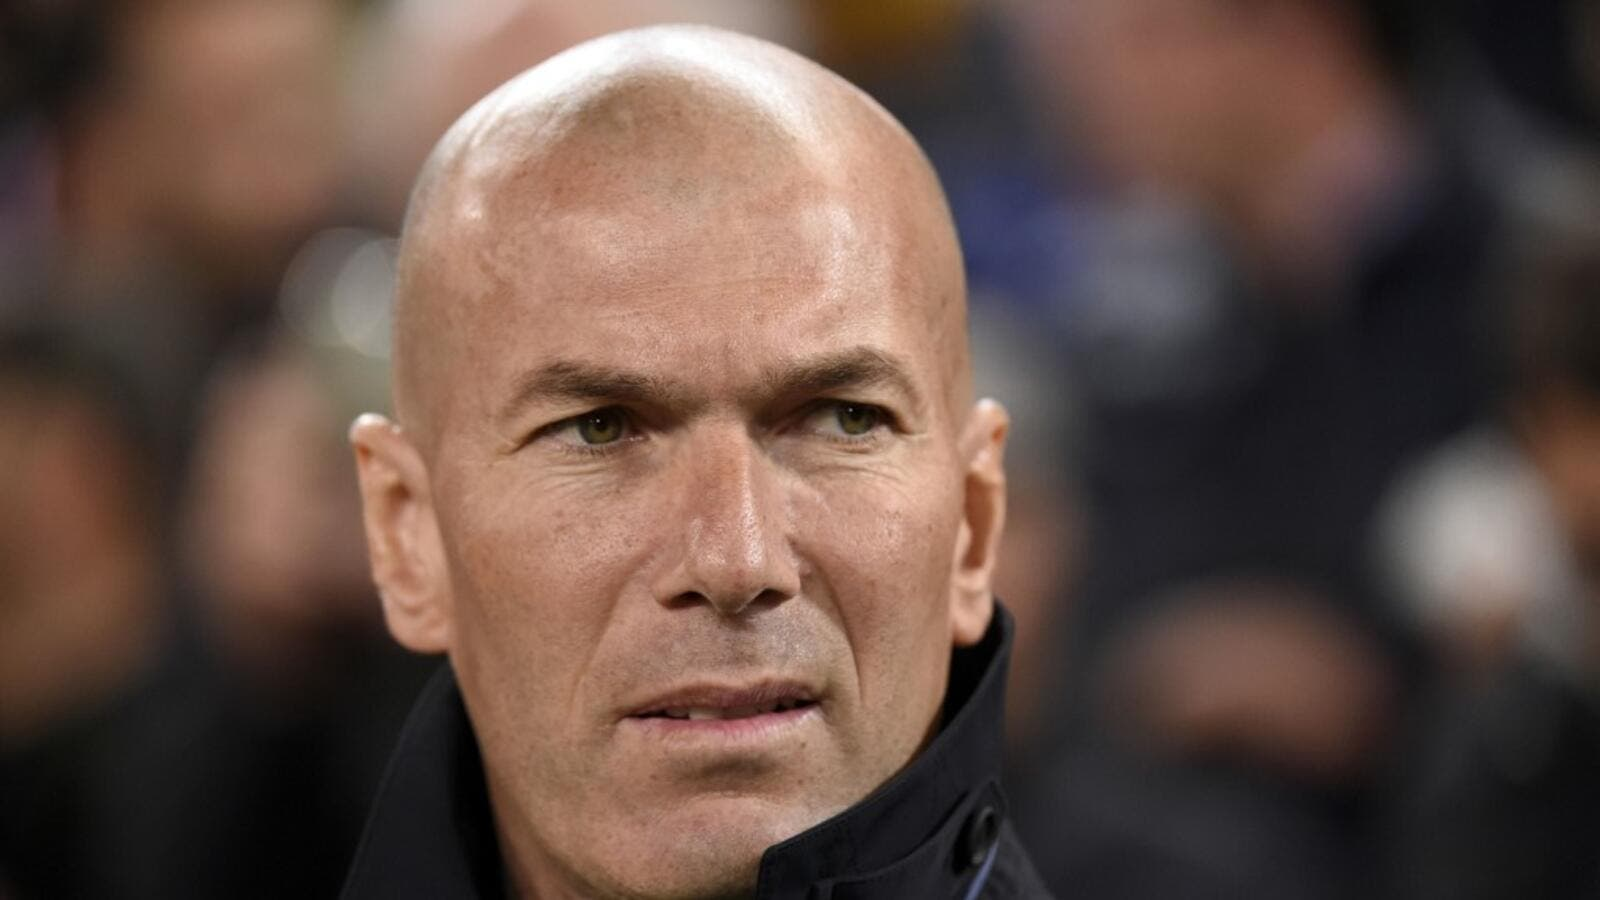 'Mané should think about Real Madrid's offer'